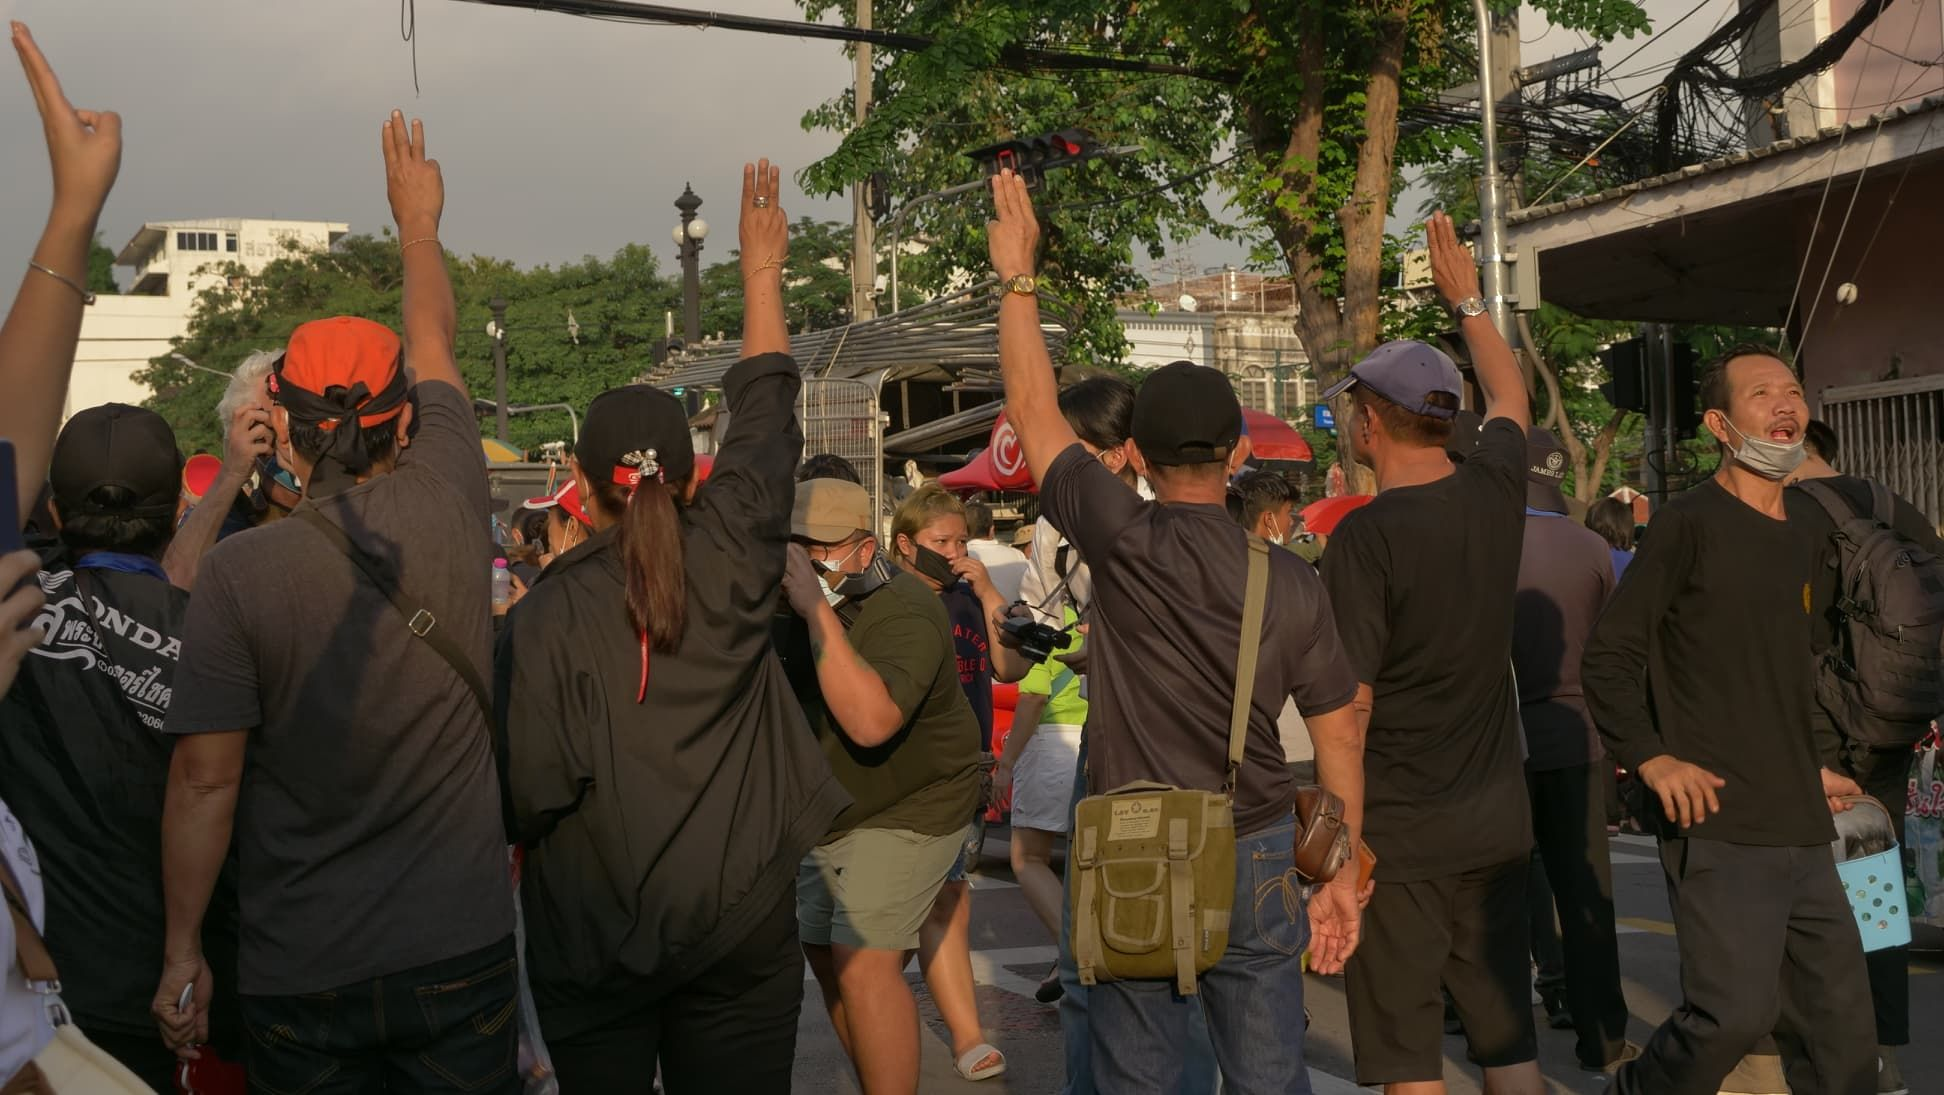 Protest planned at Bangkok's Rathchaprasong intersection, despite State of Emergency | Thaiger